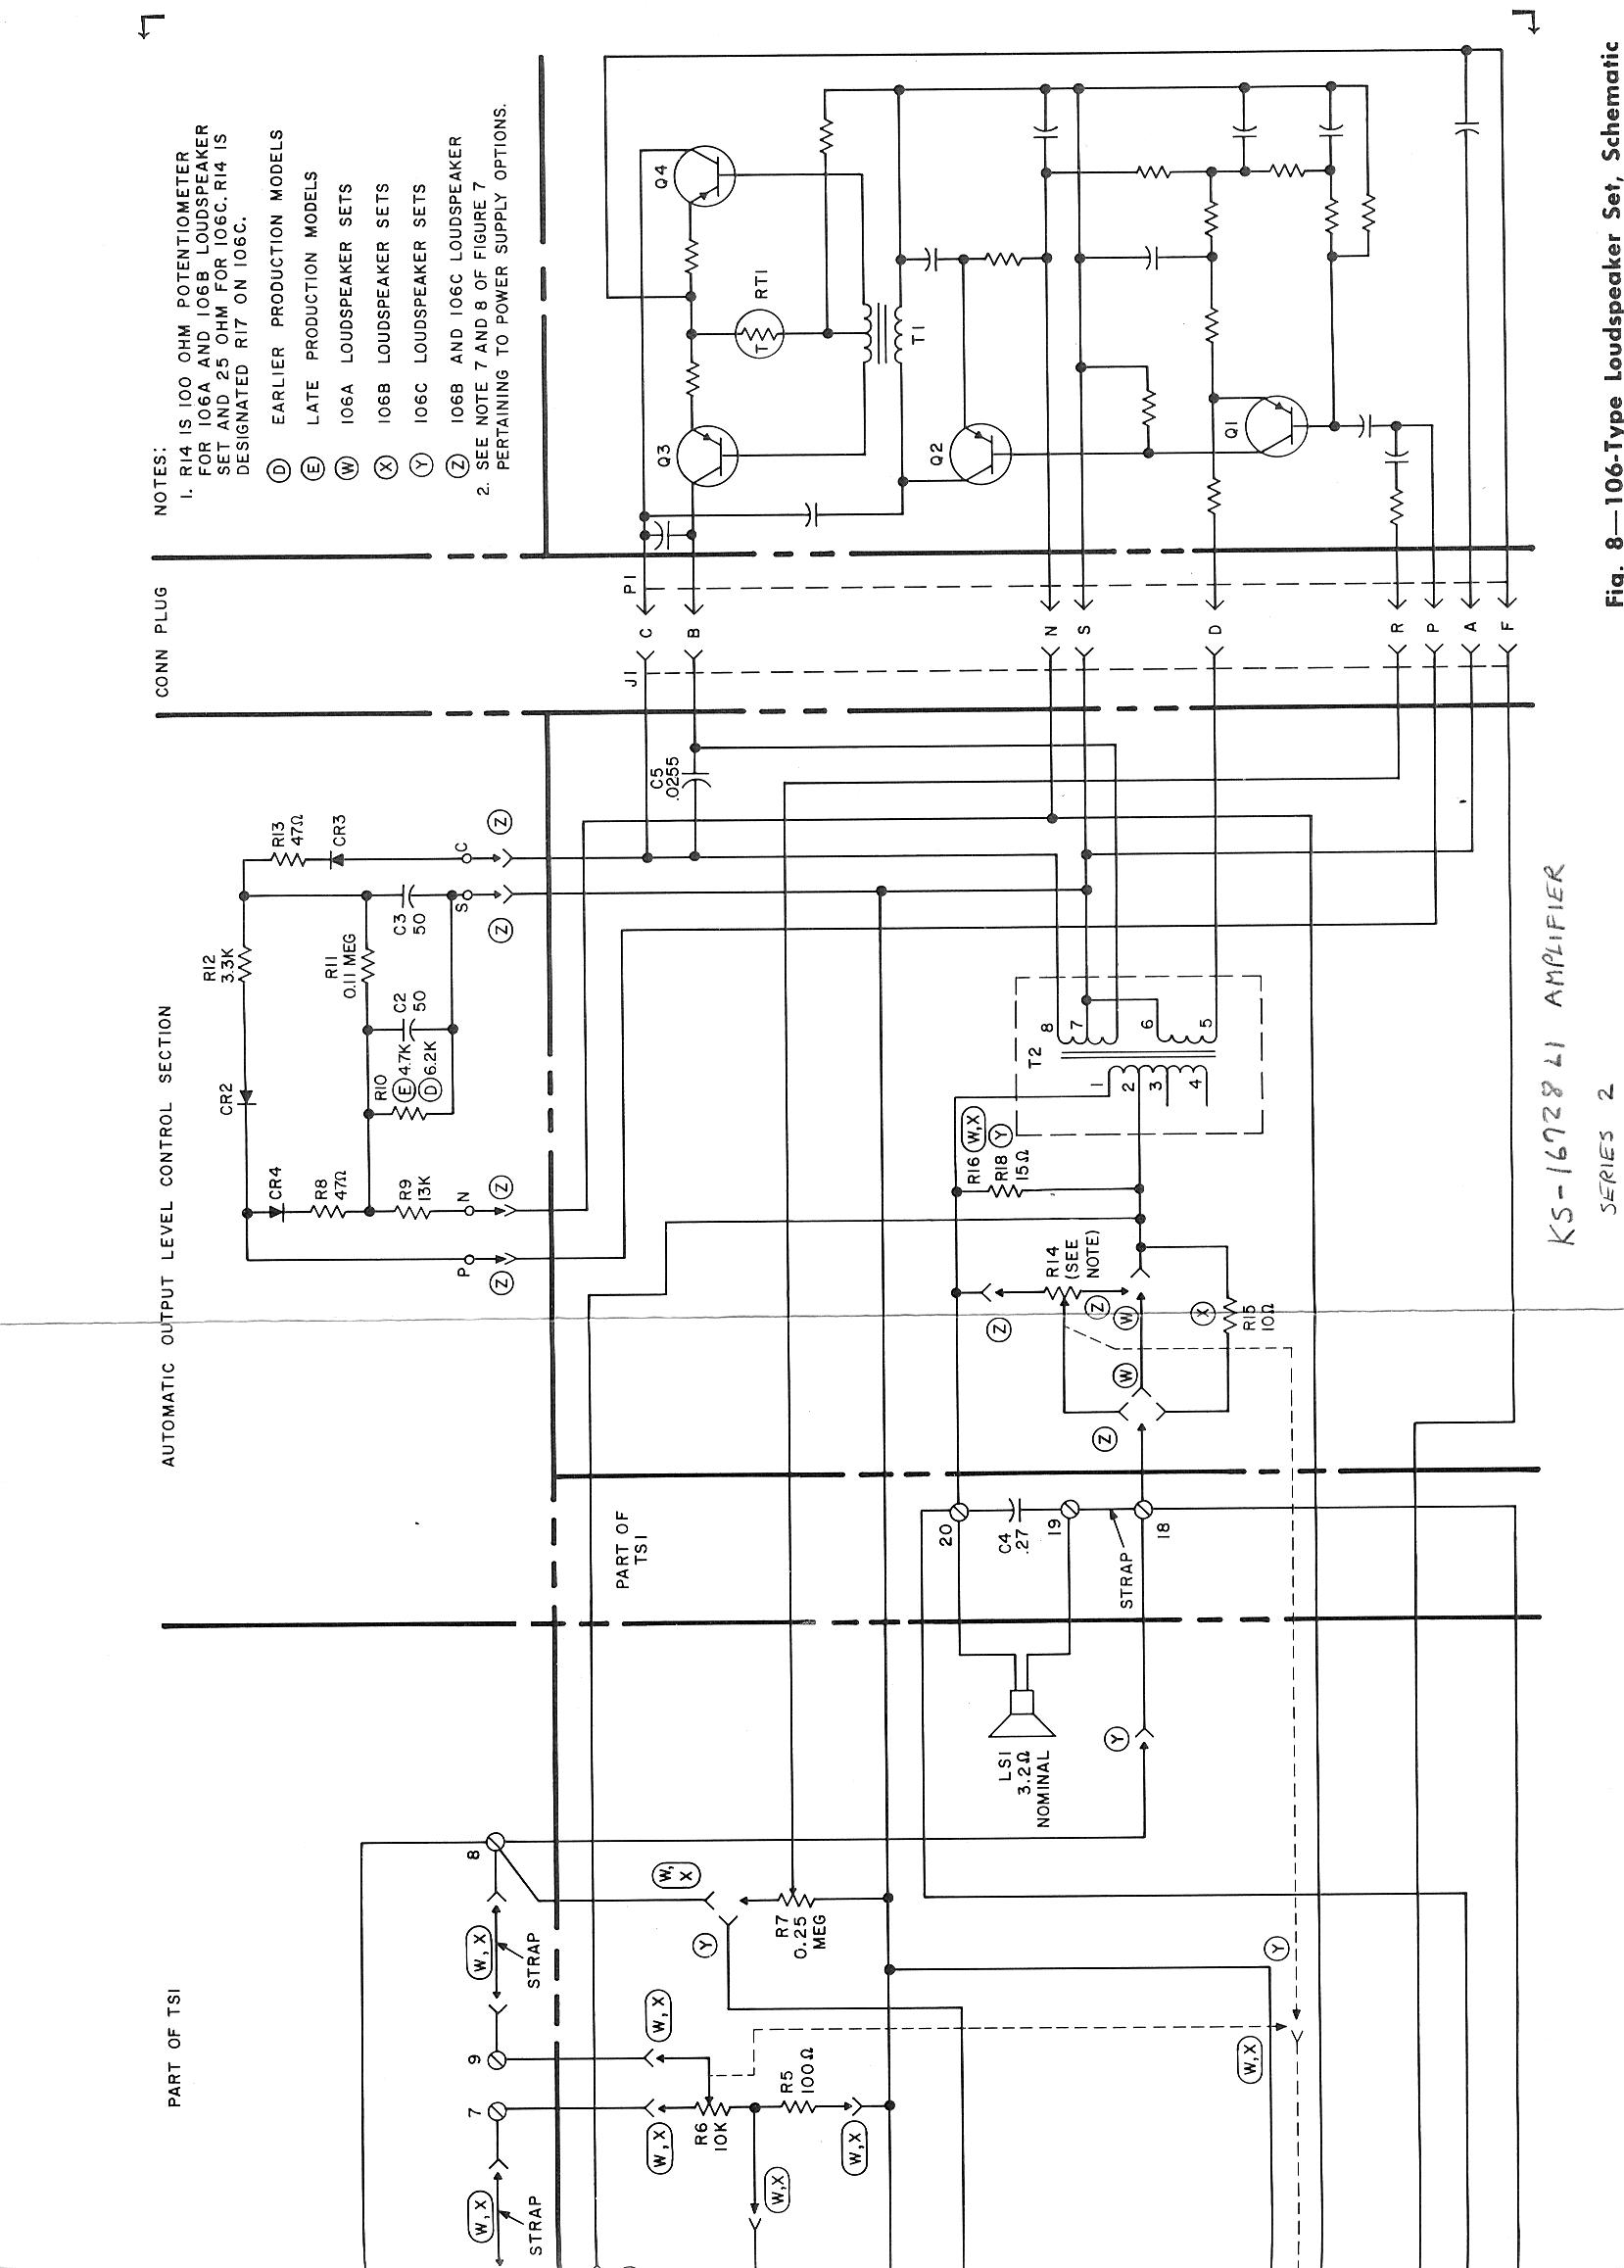 106right_half wiring diagram for international truck the wiring diagram international dt466 idm wire diagram at edmiracle.co